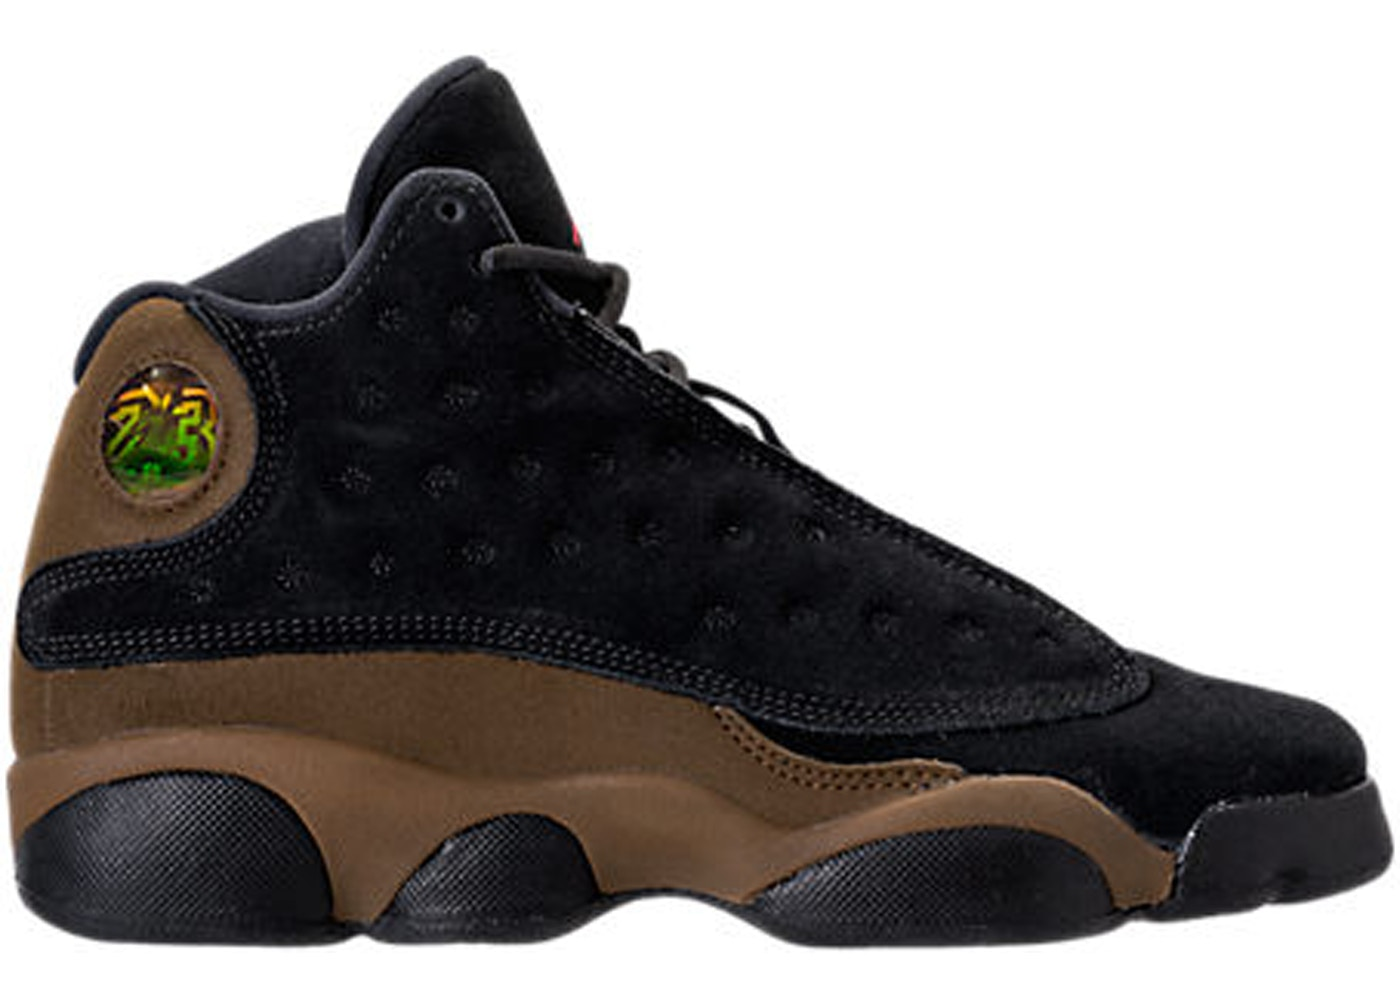 huge discount f3ed6 06539 Jordan 13 Retro Olive (GS) - 884129-006